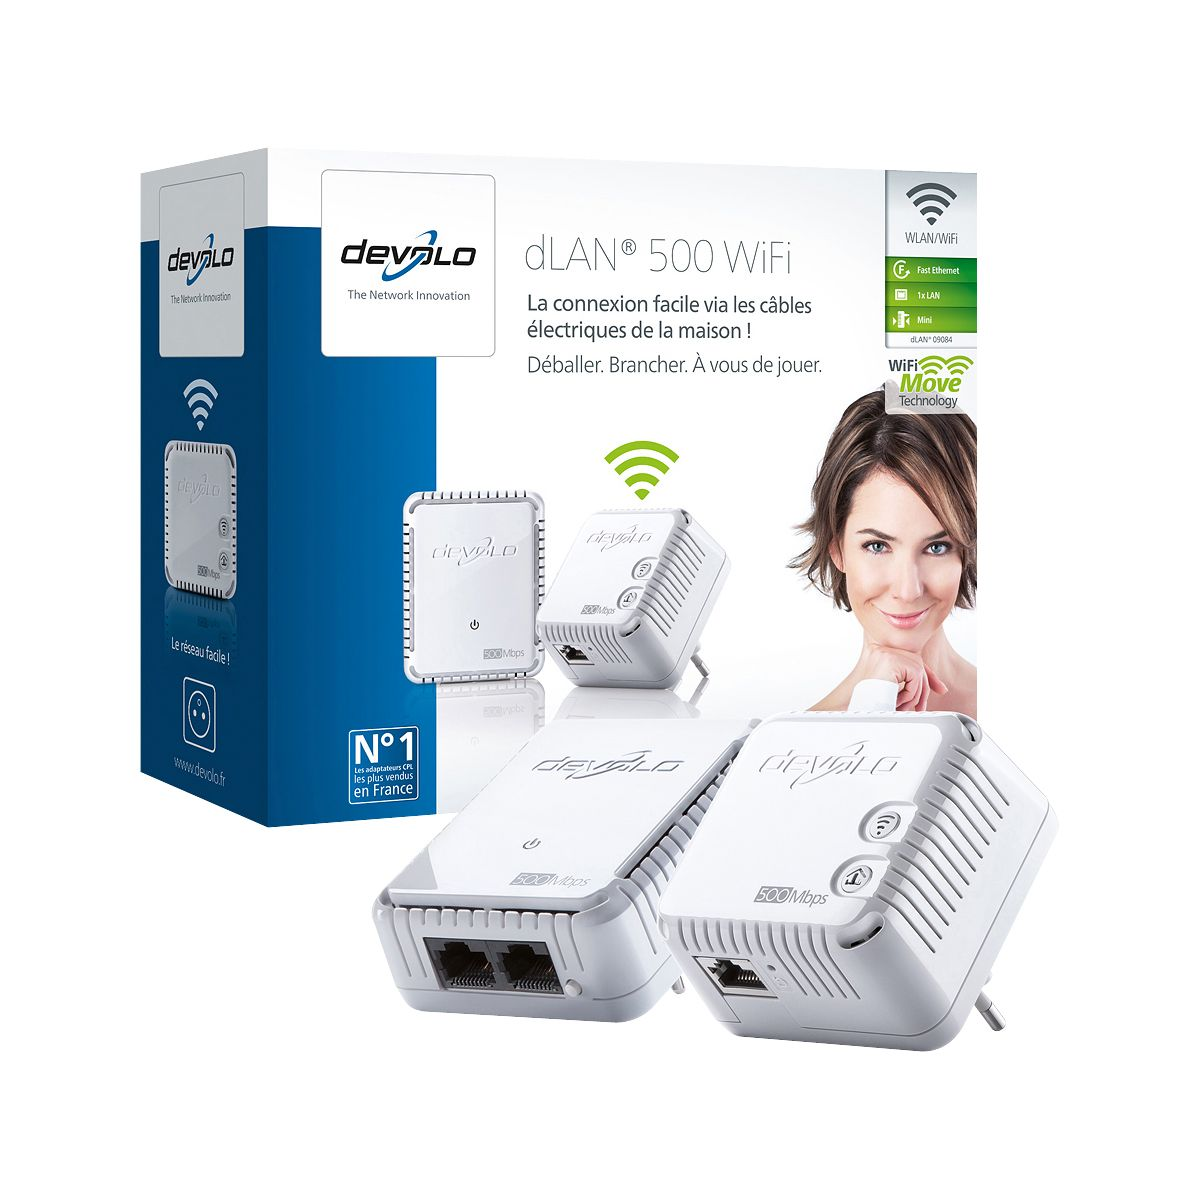 CPL Duo DEVOLO dLAN 500 Wifi Starter Kit